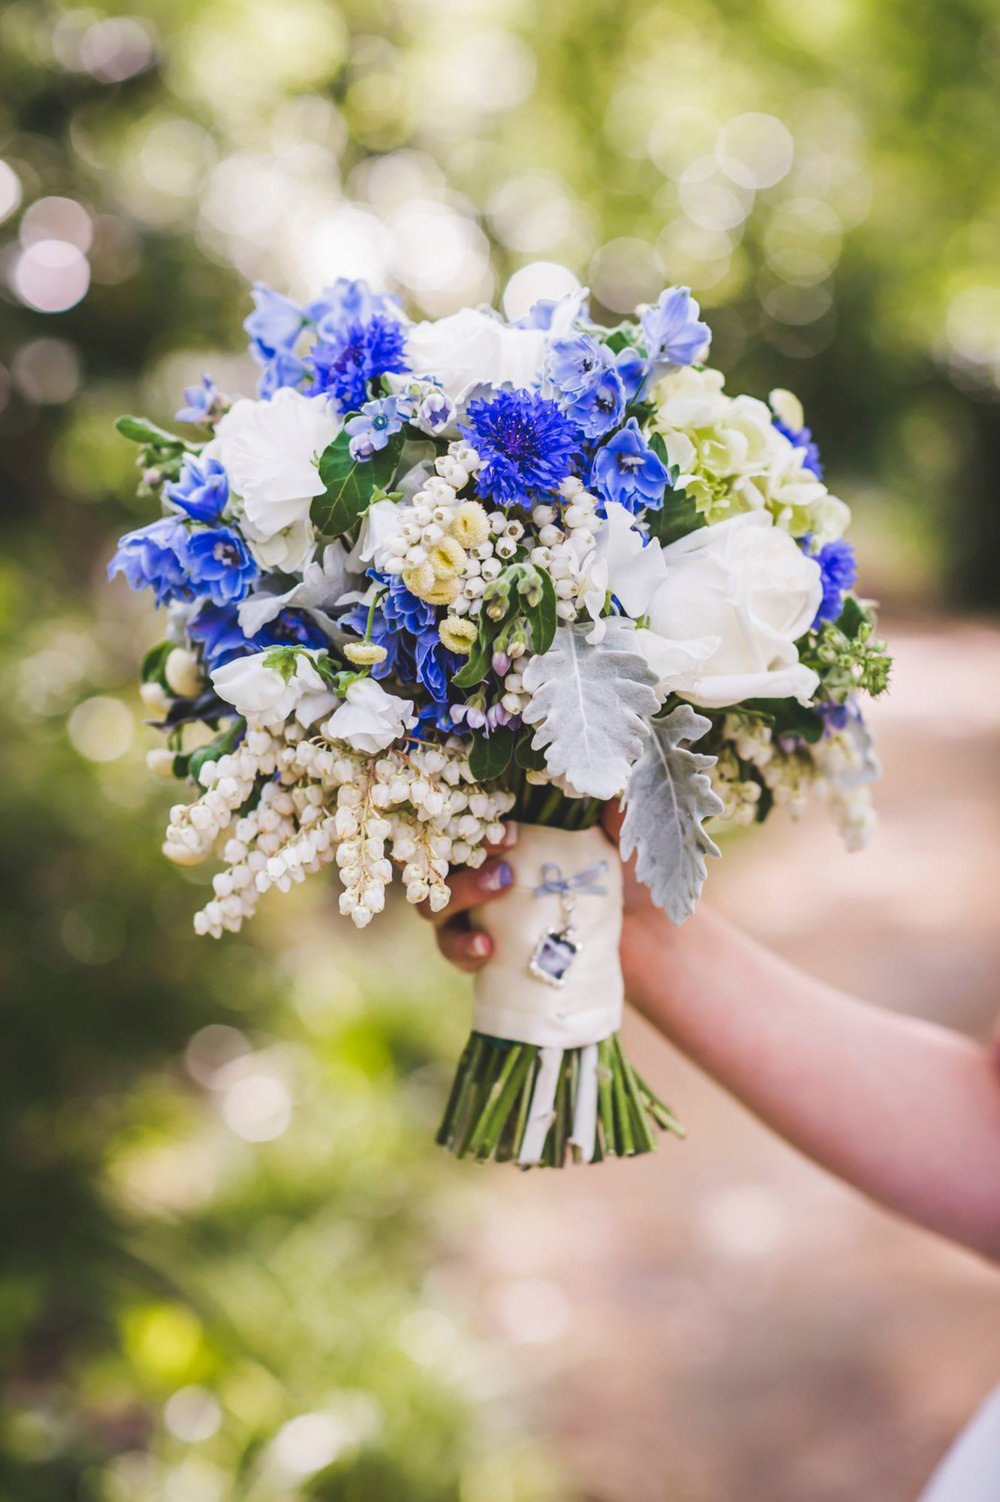 Round textured wedding bouquet - Unbridely